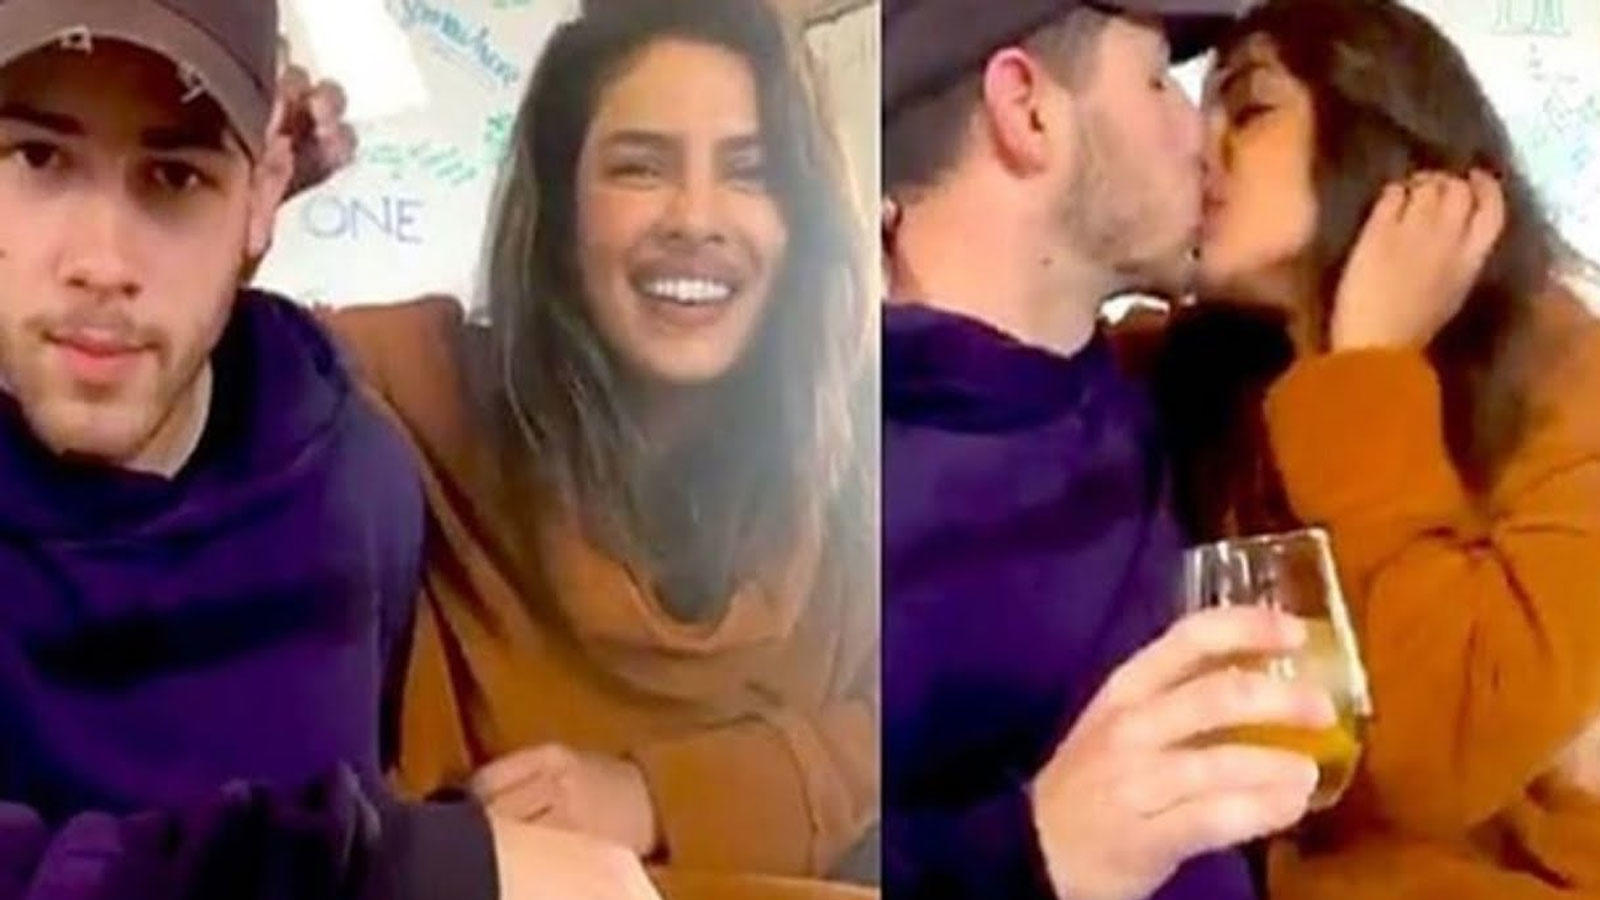 priyanka-chopra-and-nick-jonas-kiss-steals-the-show-during-their-live-chat